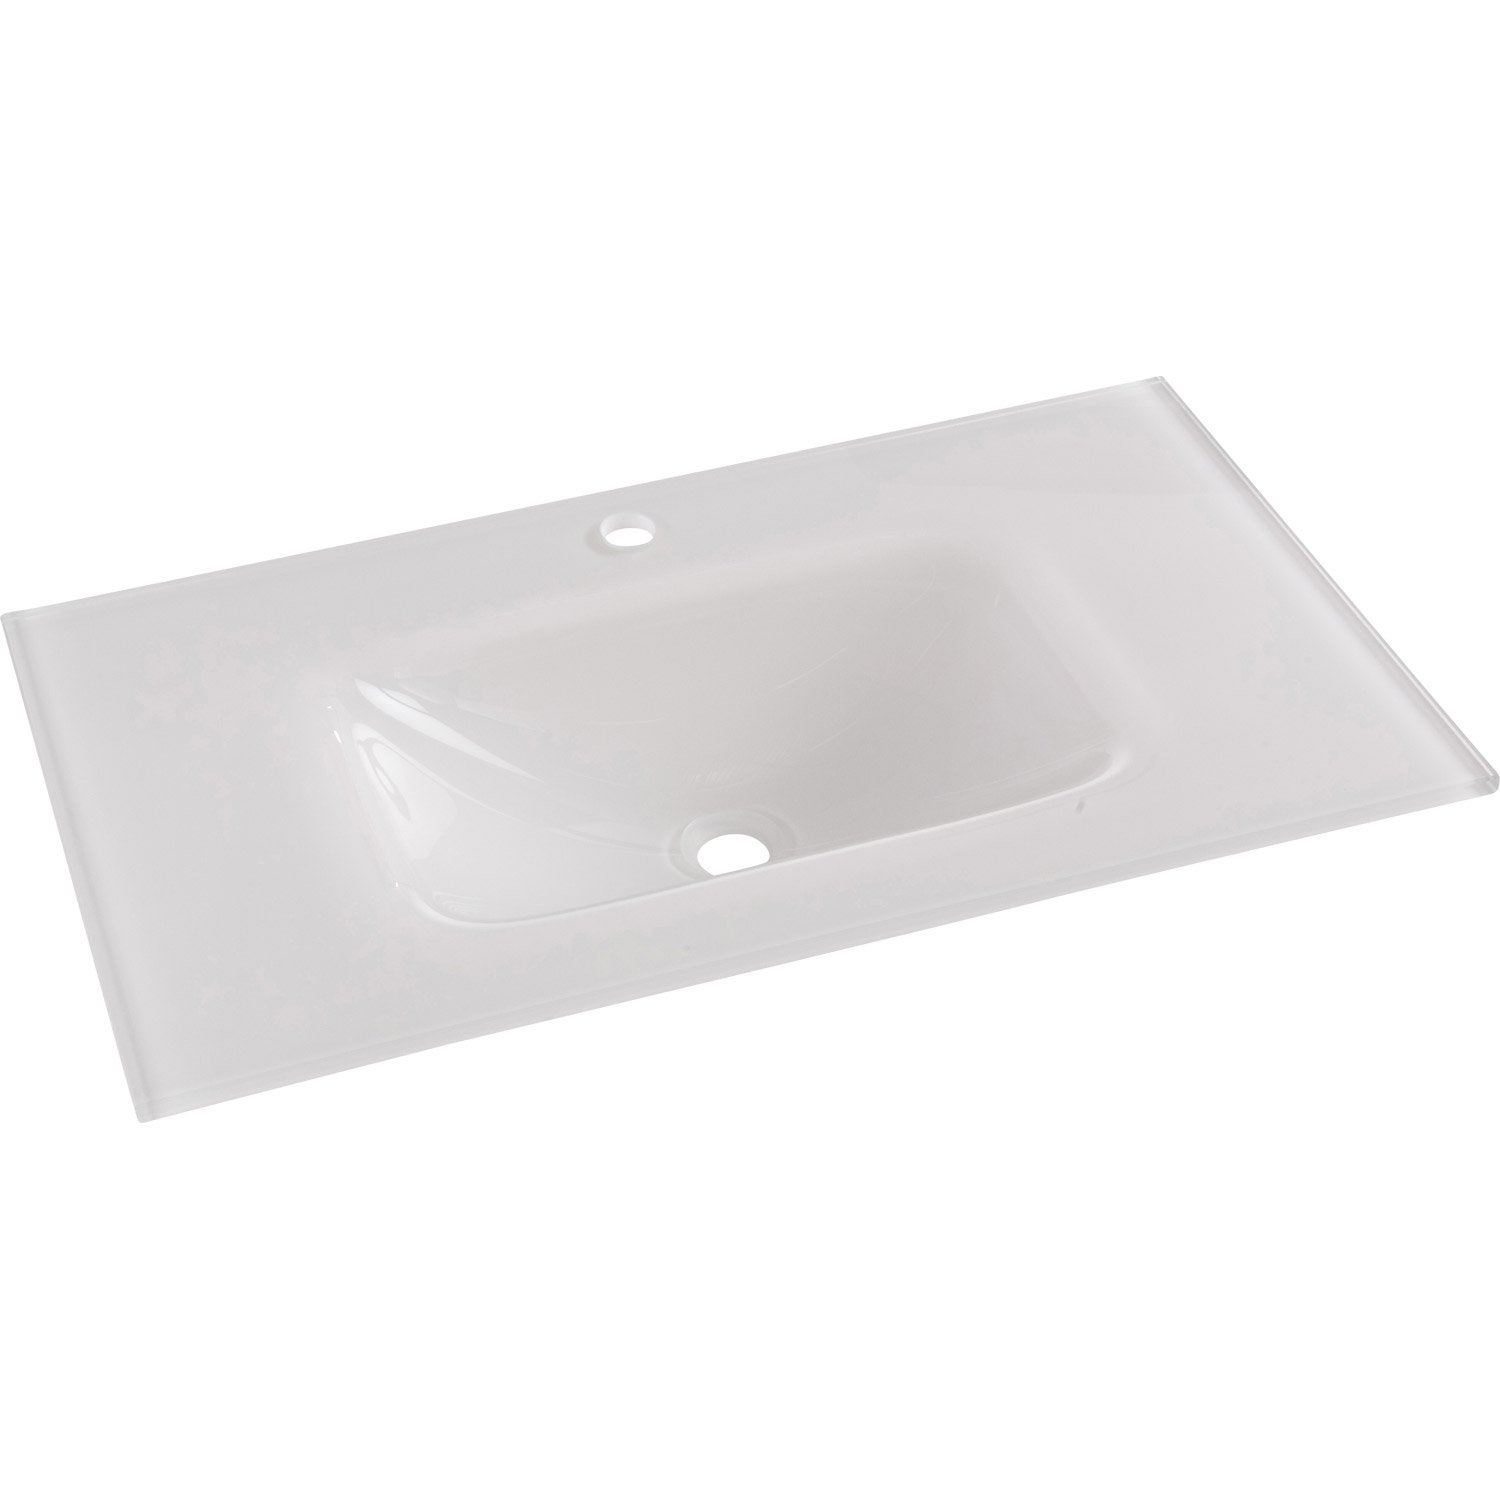 Plan vasque simple Opale Verre trempé 81 cm | Leroy Merlin